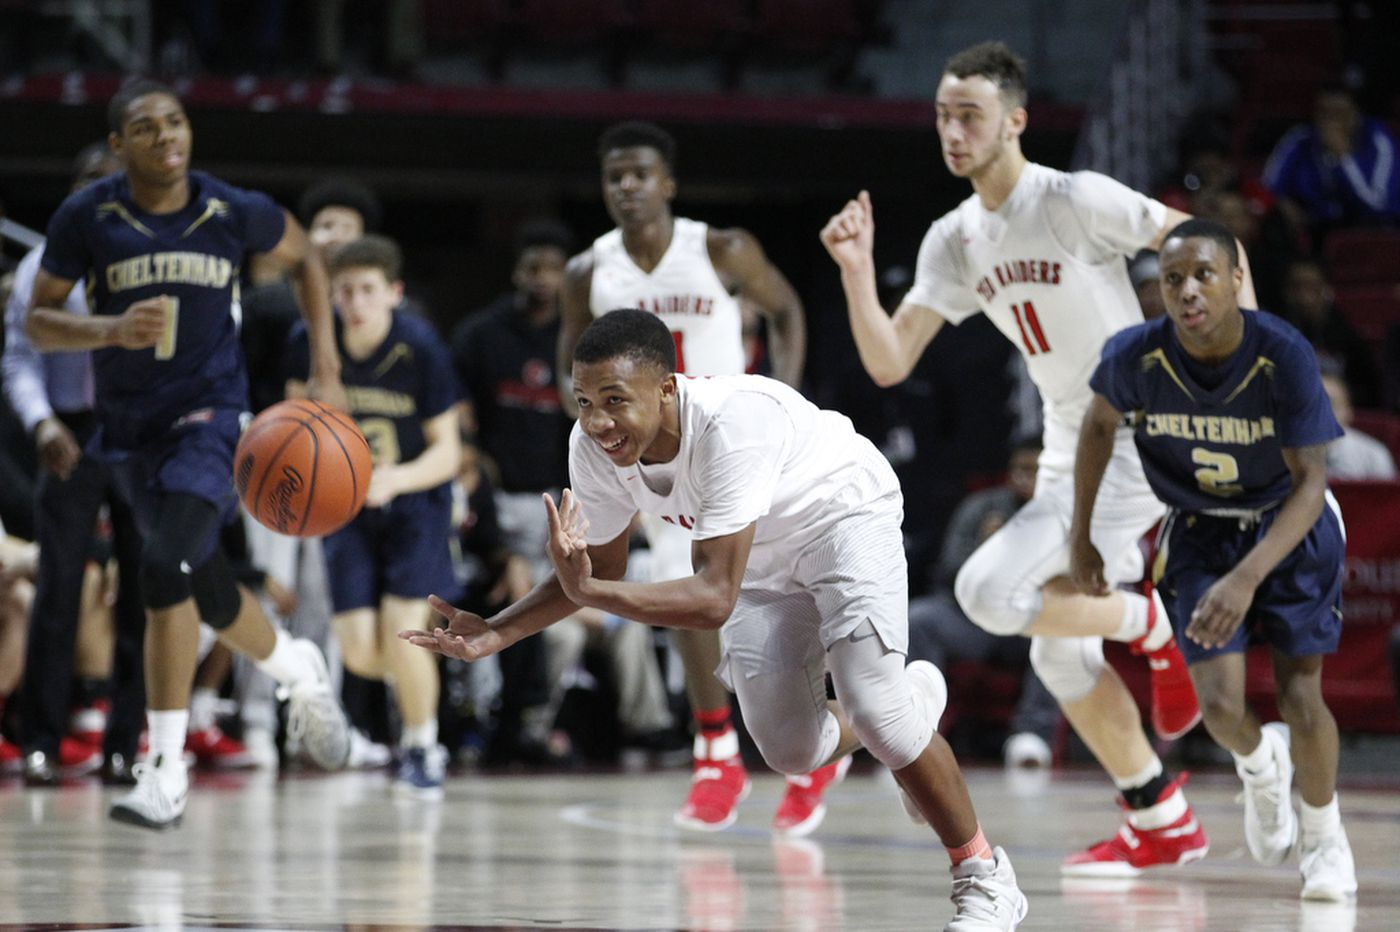 Coatesville guard Jhamir Brickus was already playing lights-out before dropping 52 points against Chester on Saturday